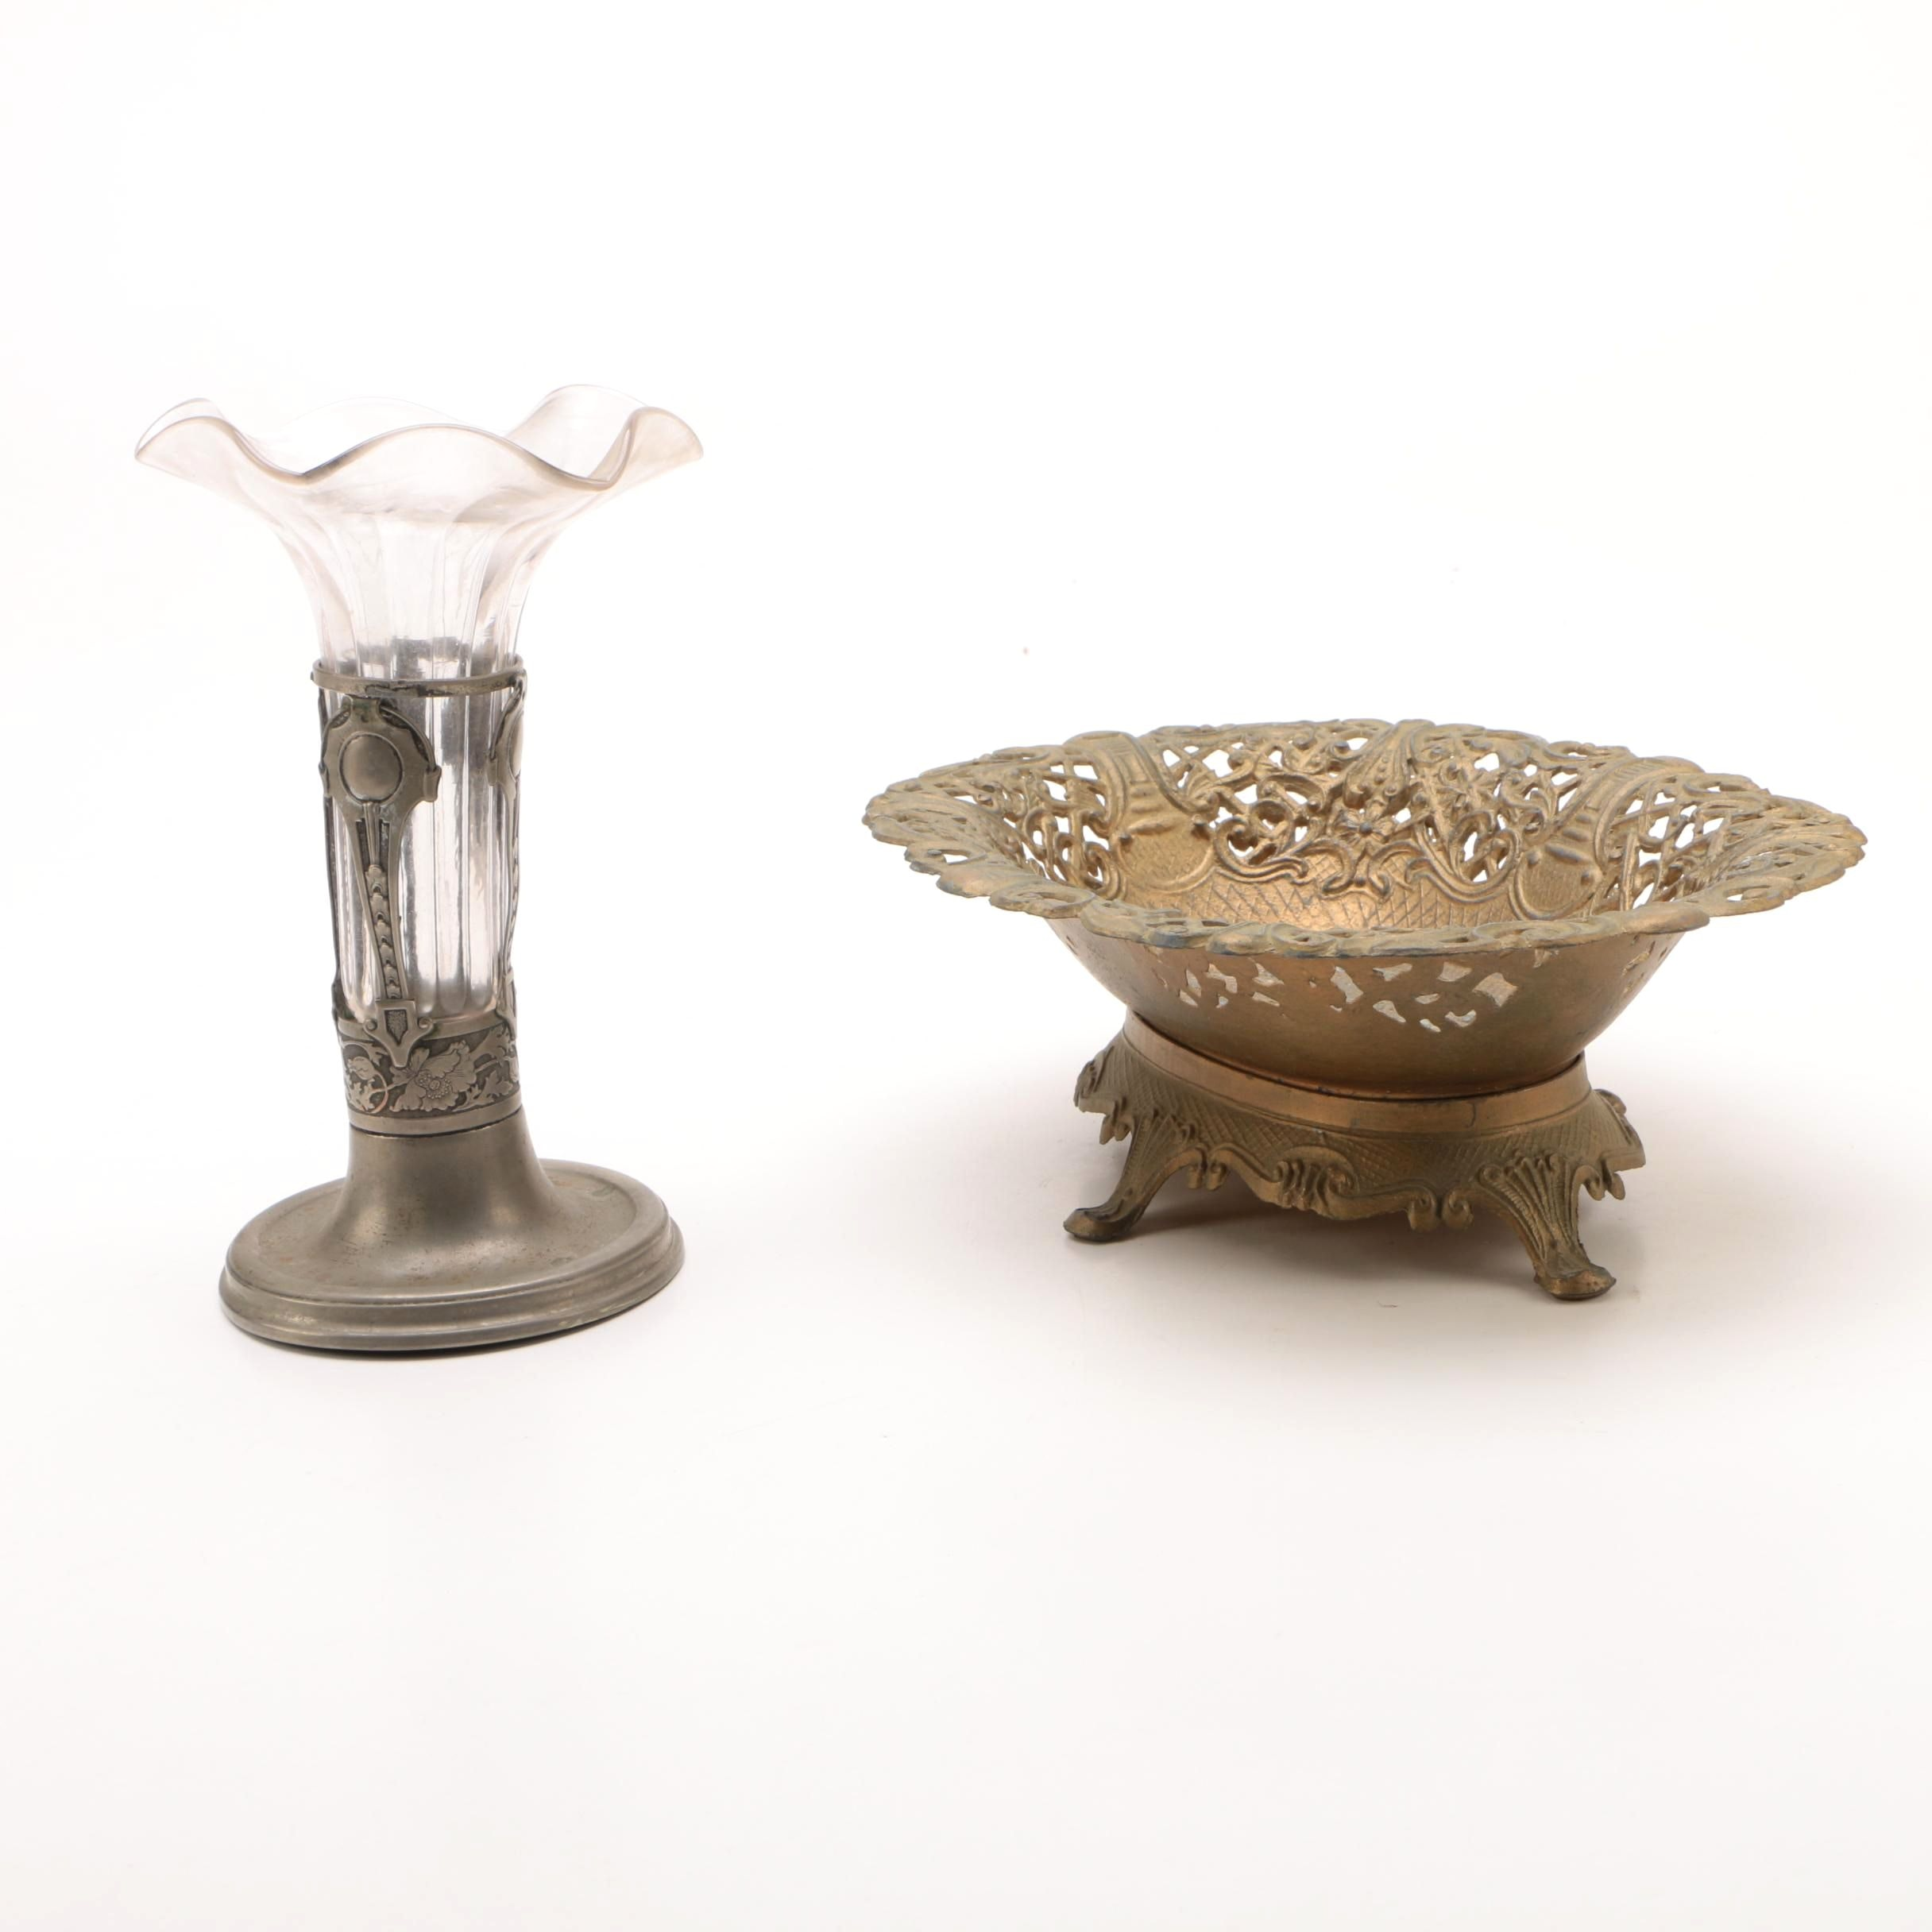 Art Nouveau Glass and Silver Tone Bud Vase with Reticulated Brass Bowl